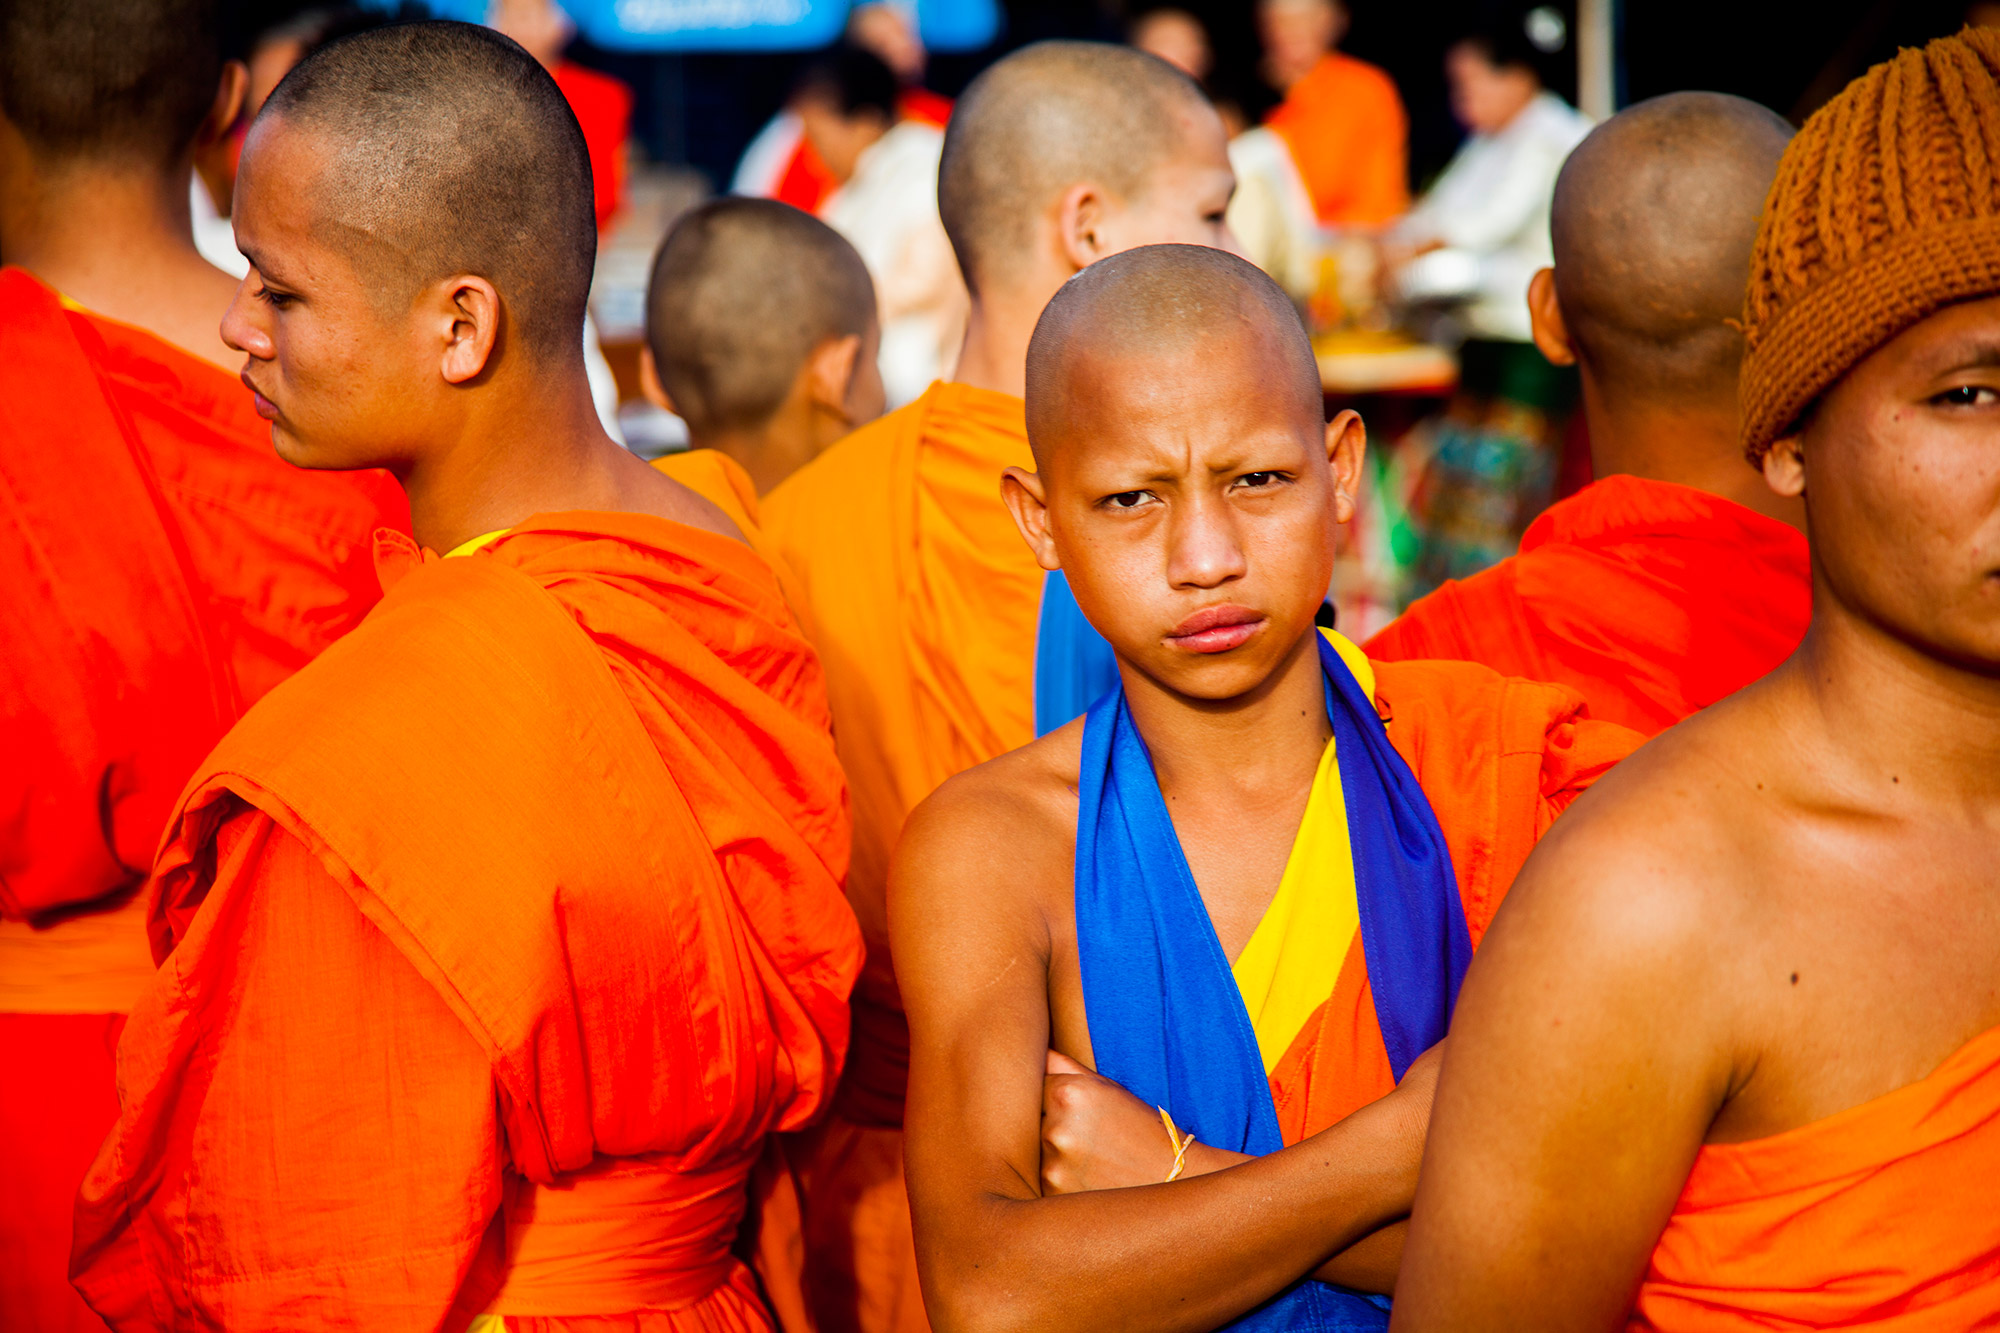 Monk at That Luang Festival